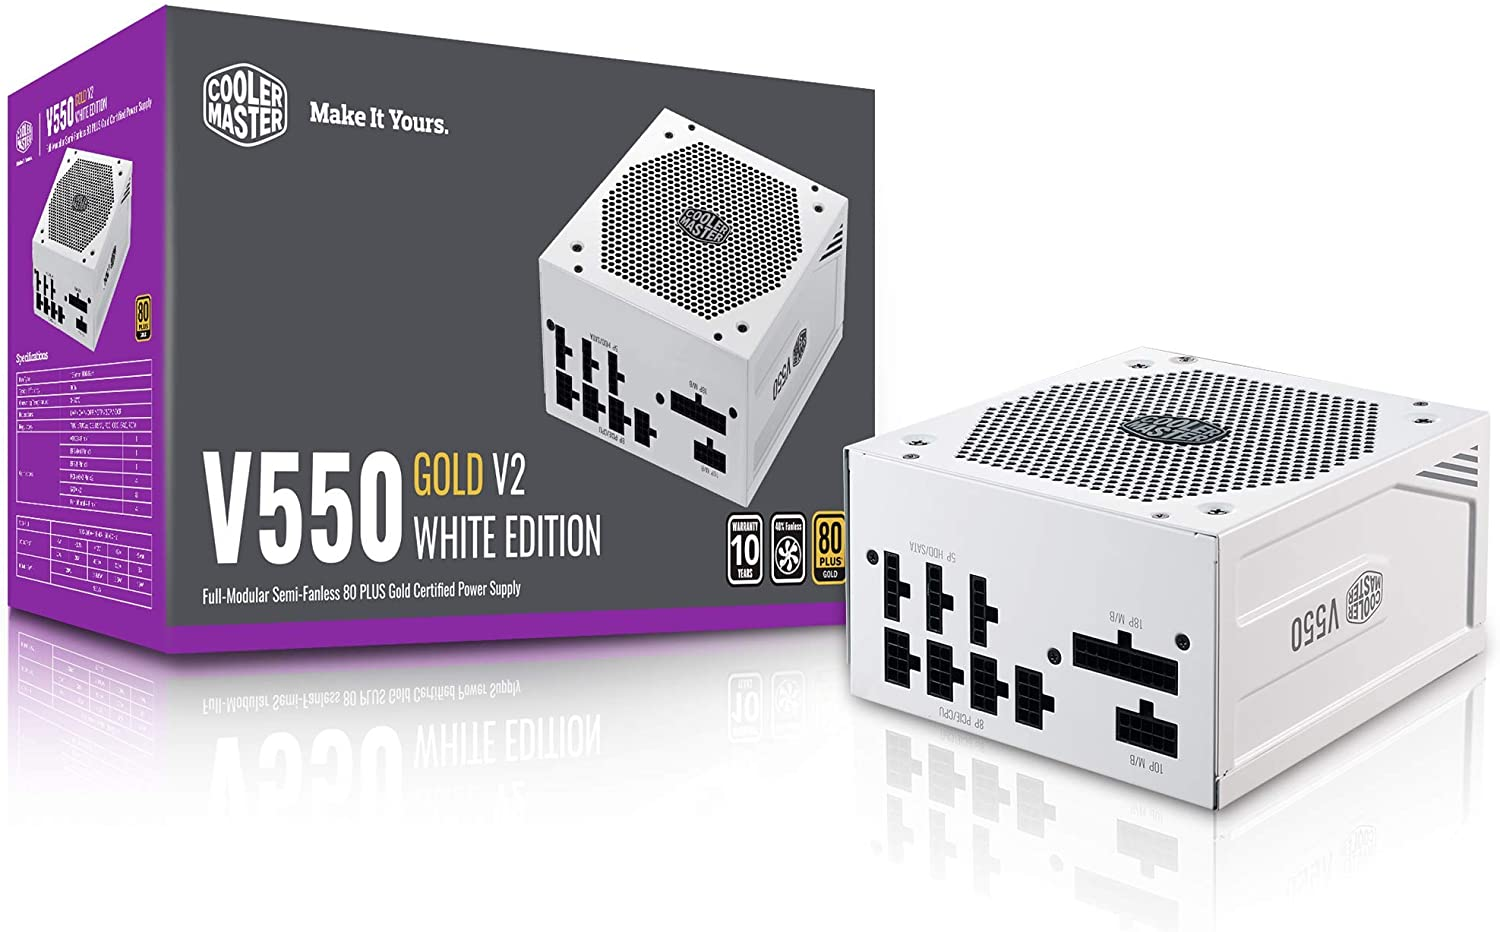 Cooler Master V550 Gold White Edition V2 Full Modular, 550W, 80+ Gold Efficiency, Semi-fanless Operation, 16AWG PCIe high-Efficiency Cables